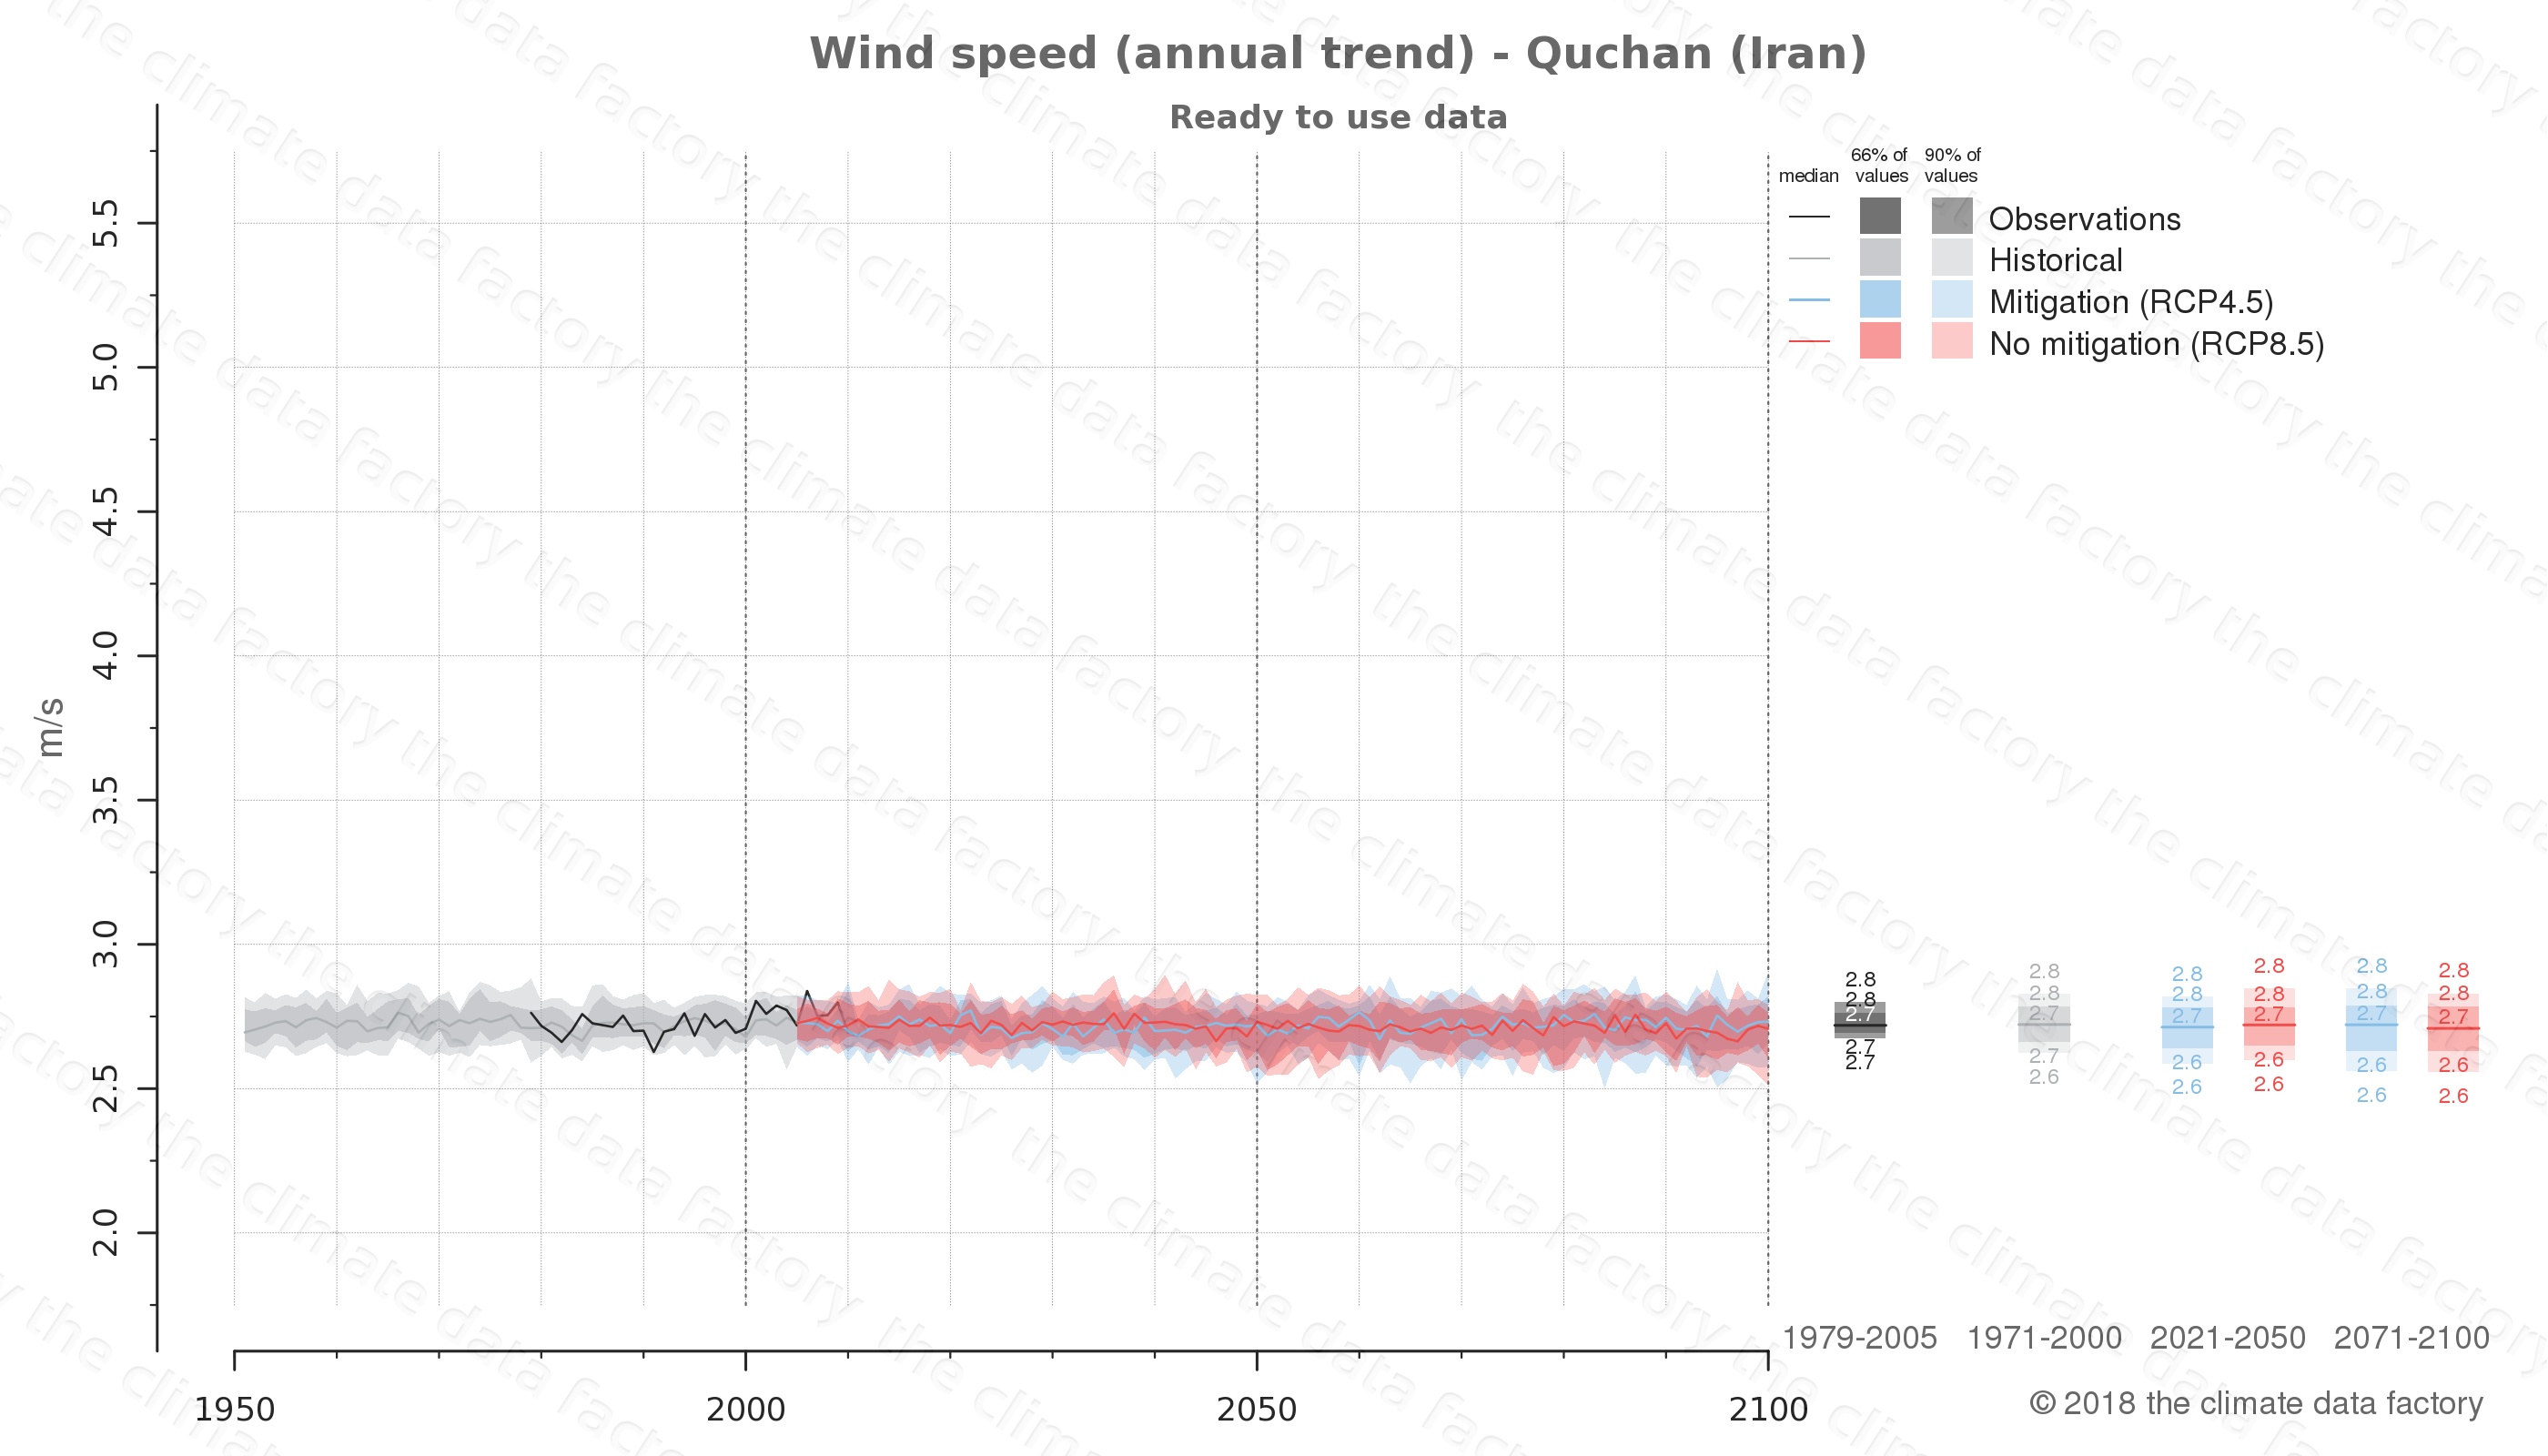 climate change data policy adaptation climate graph city data wind-speed quchan iran